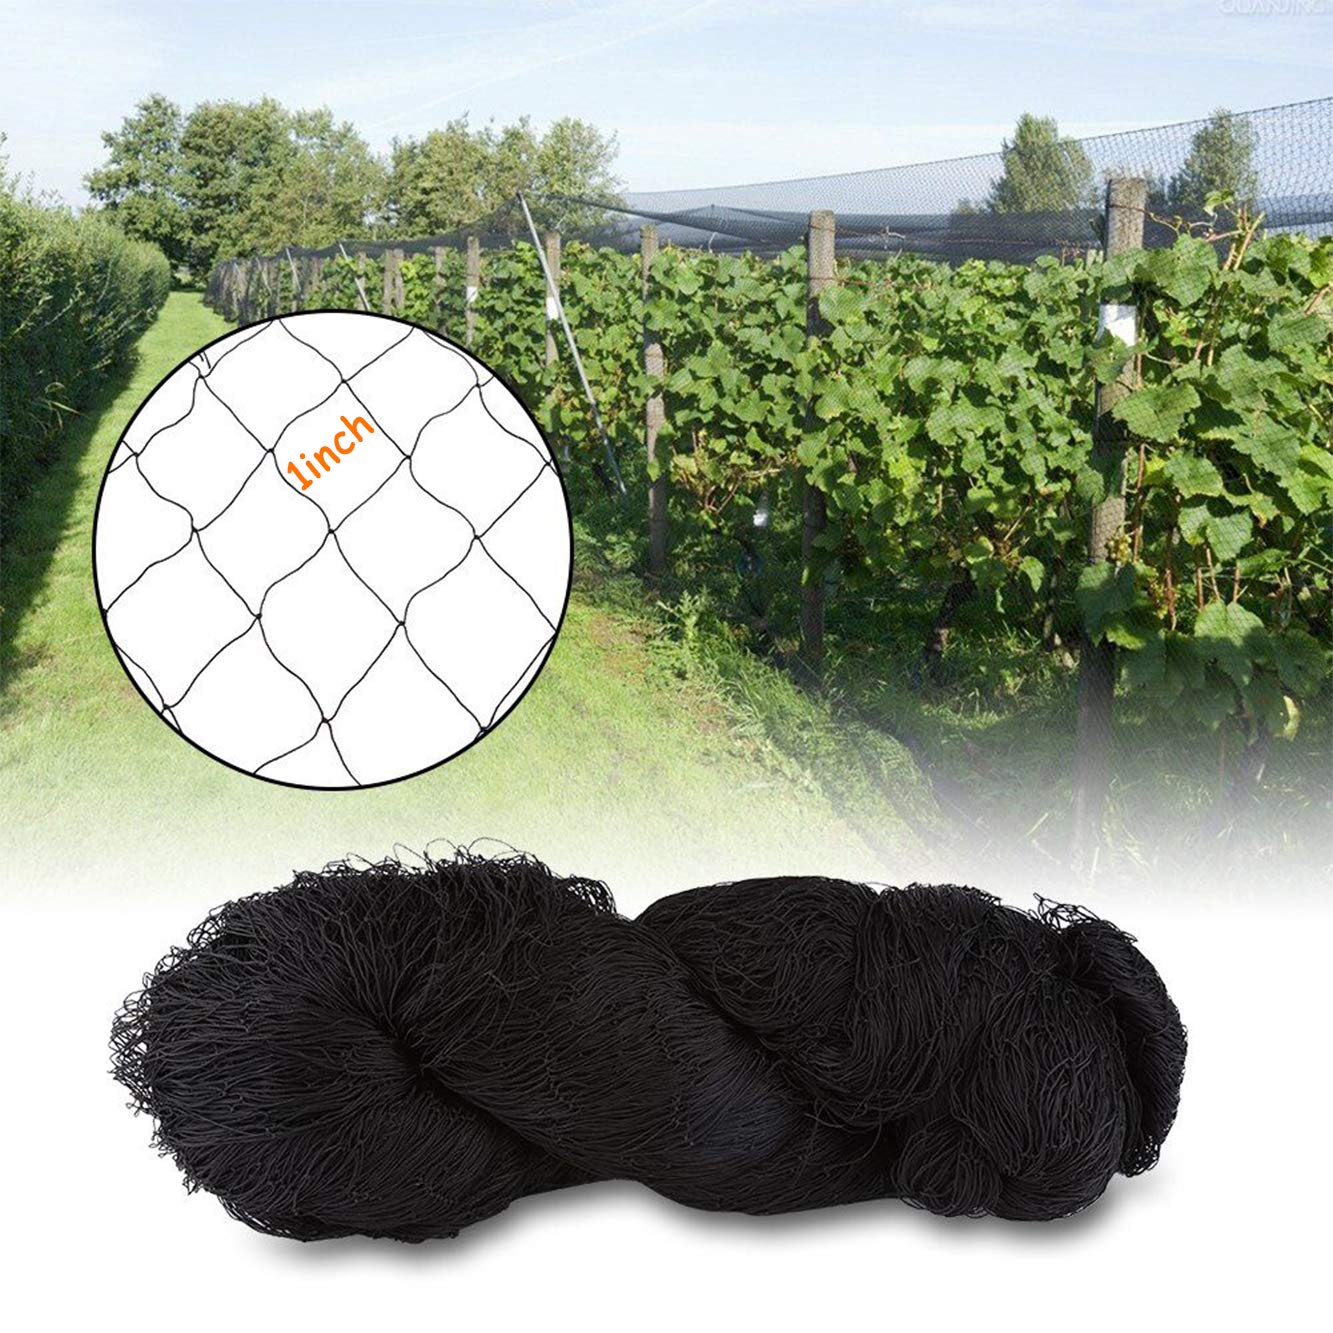 Plants and Vegetables 25 X 50 Net Netting for Bird Poultry Aviary Game Pens New 1 Square Mesh Size to Protect Fruit Trees 25/×50-1